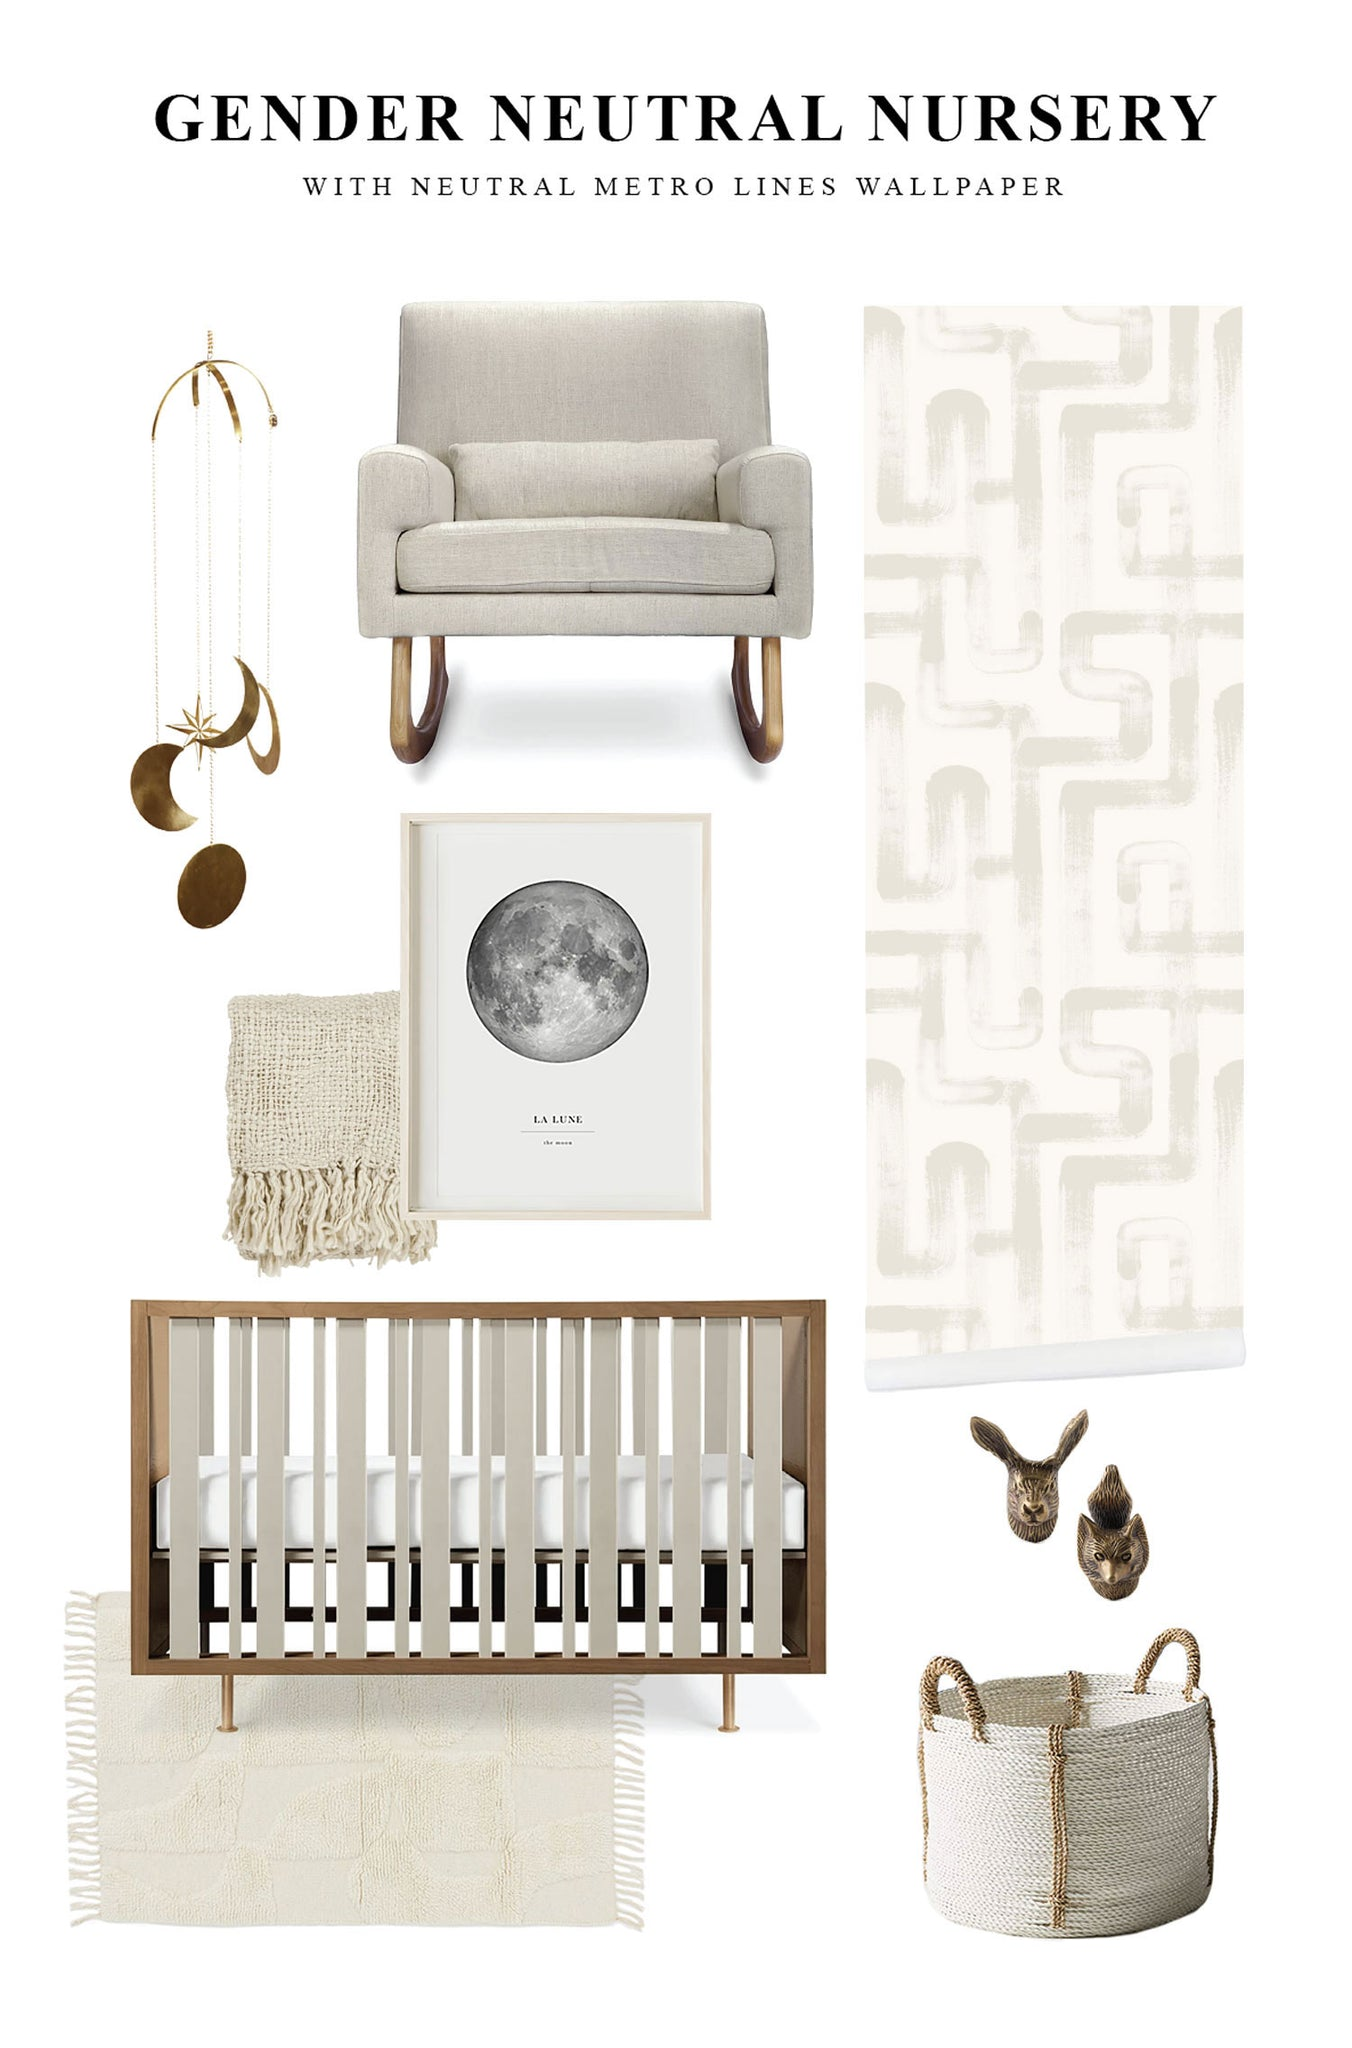 Gender neutral boho nursery interior with modern brush design removable wallpaper